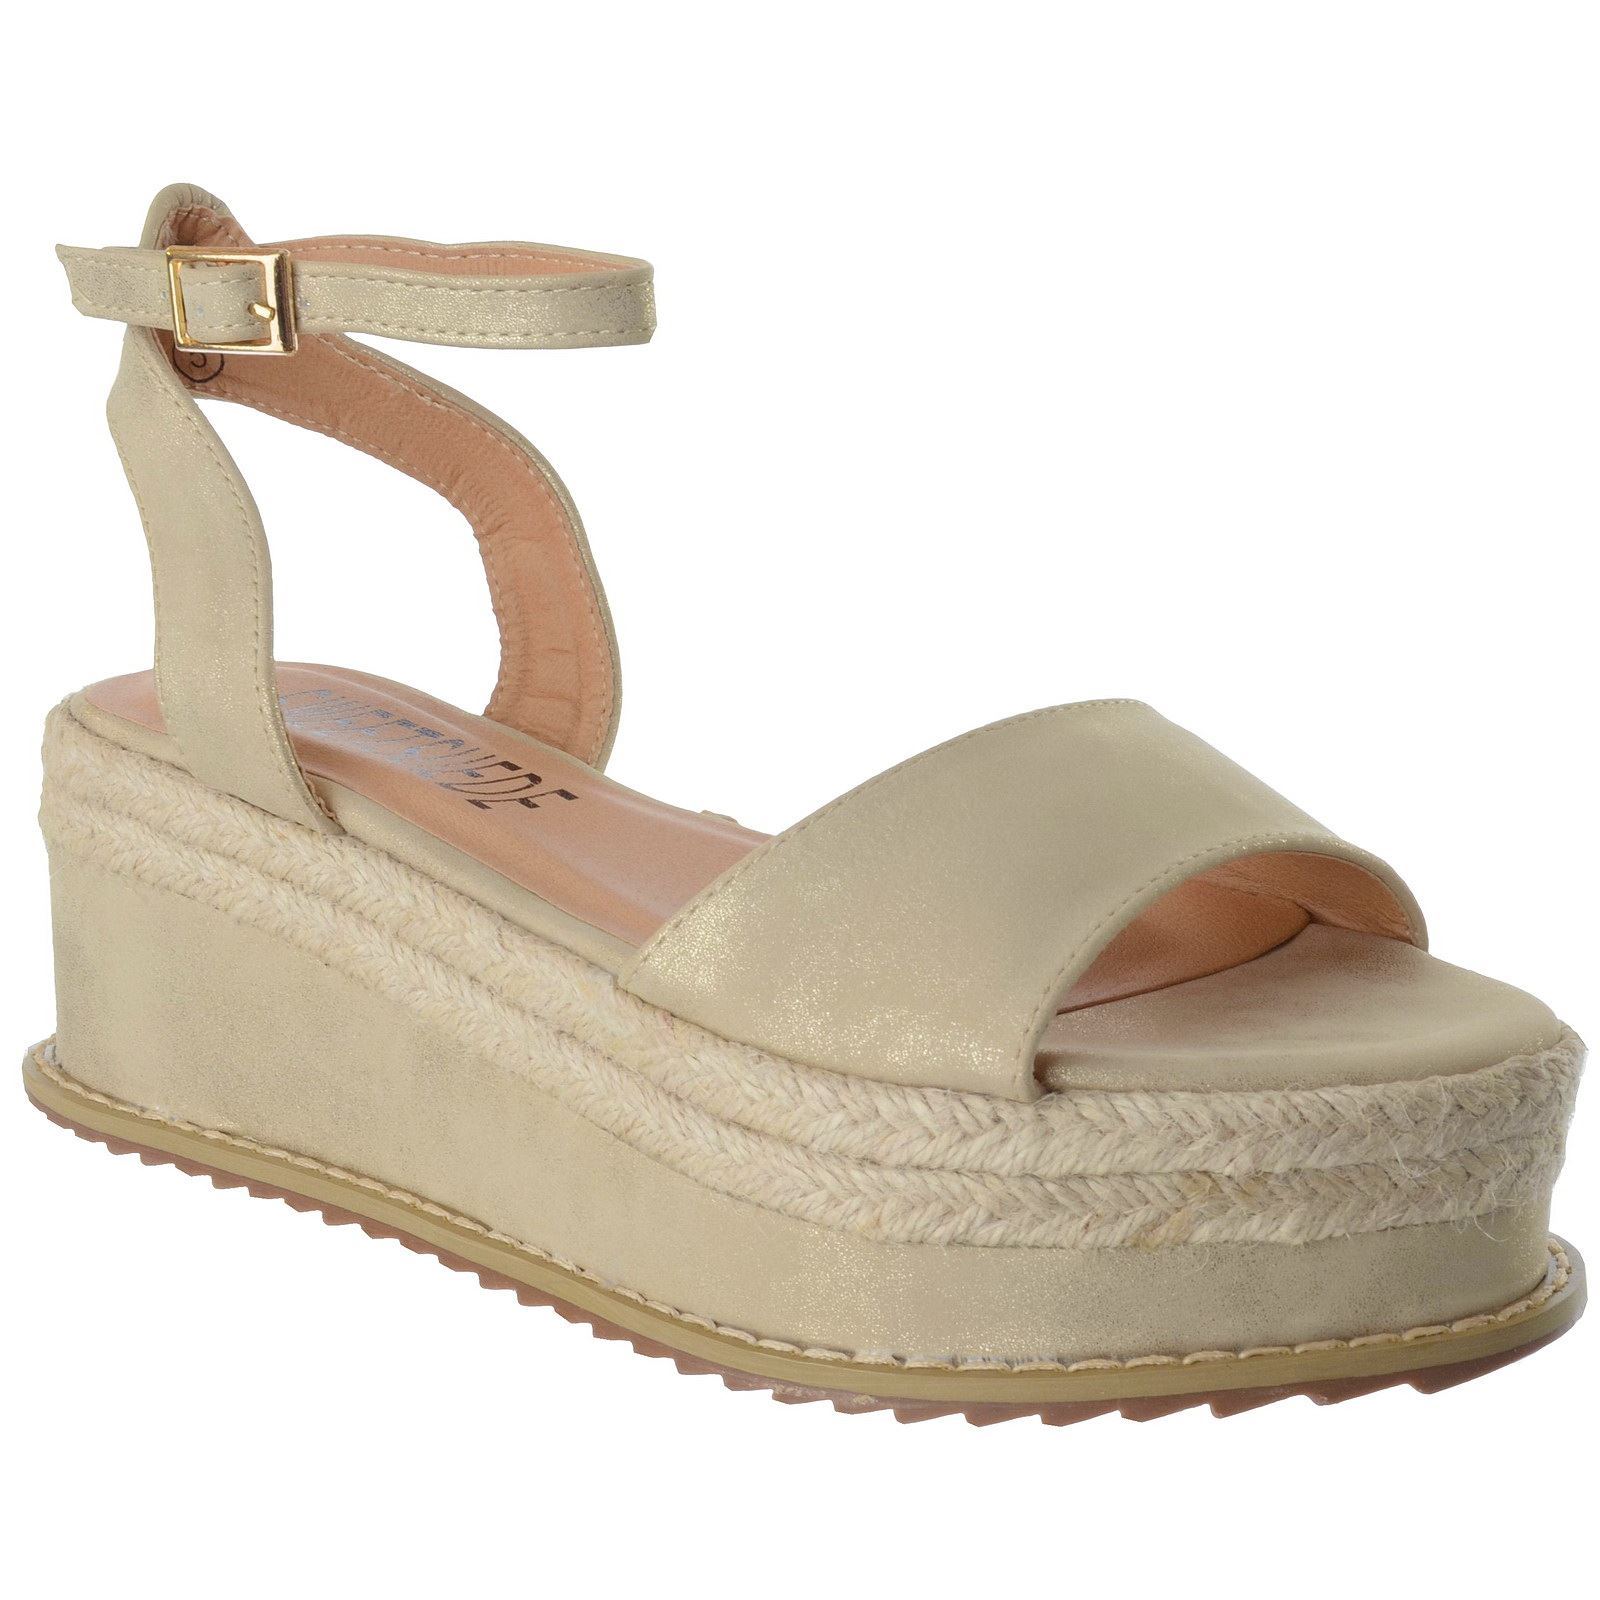 WOMENS-LADIES-GLADIATOR-ESPADRILLE-ANKLE-STRAP-PLATFORM-WEDGE-SANDALS-SHOES-SIZE